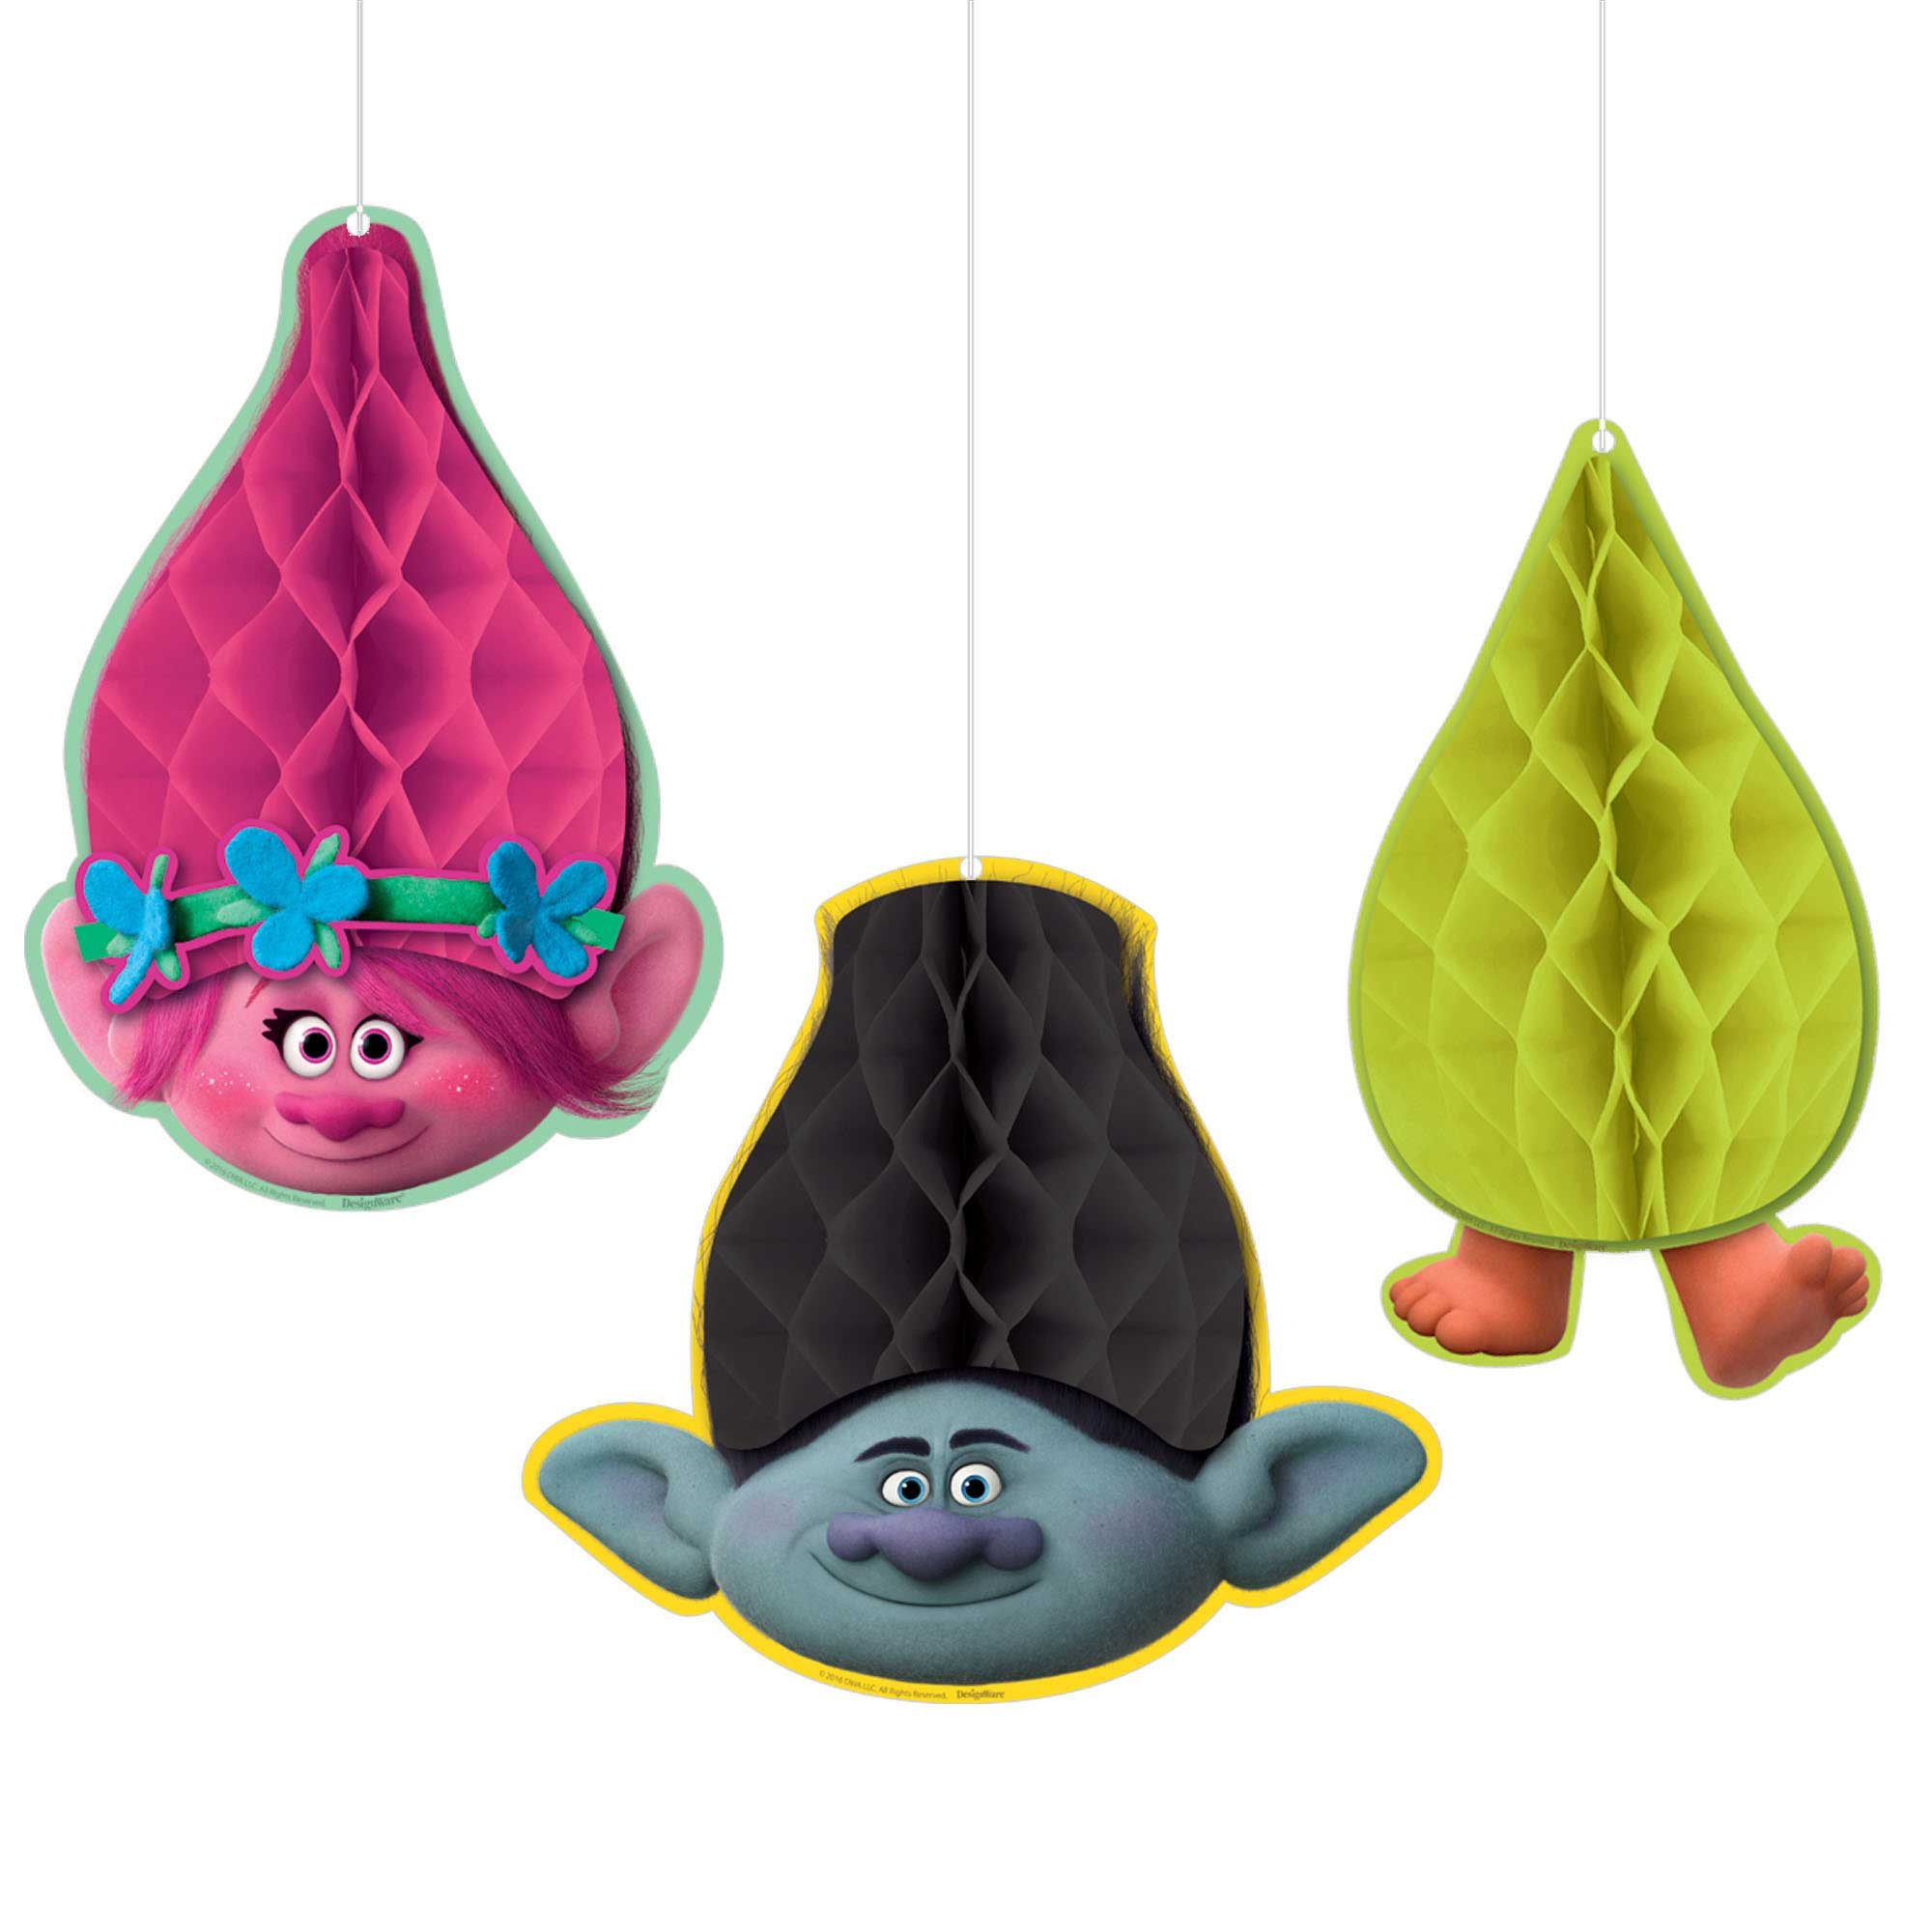 Trolls Honeycomb Decorations (4) 13051702373 | eBay